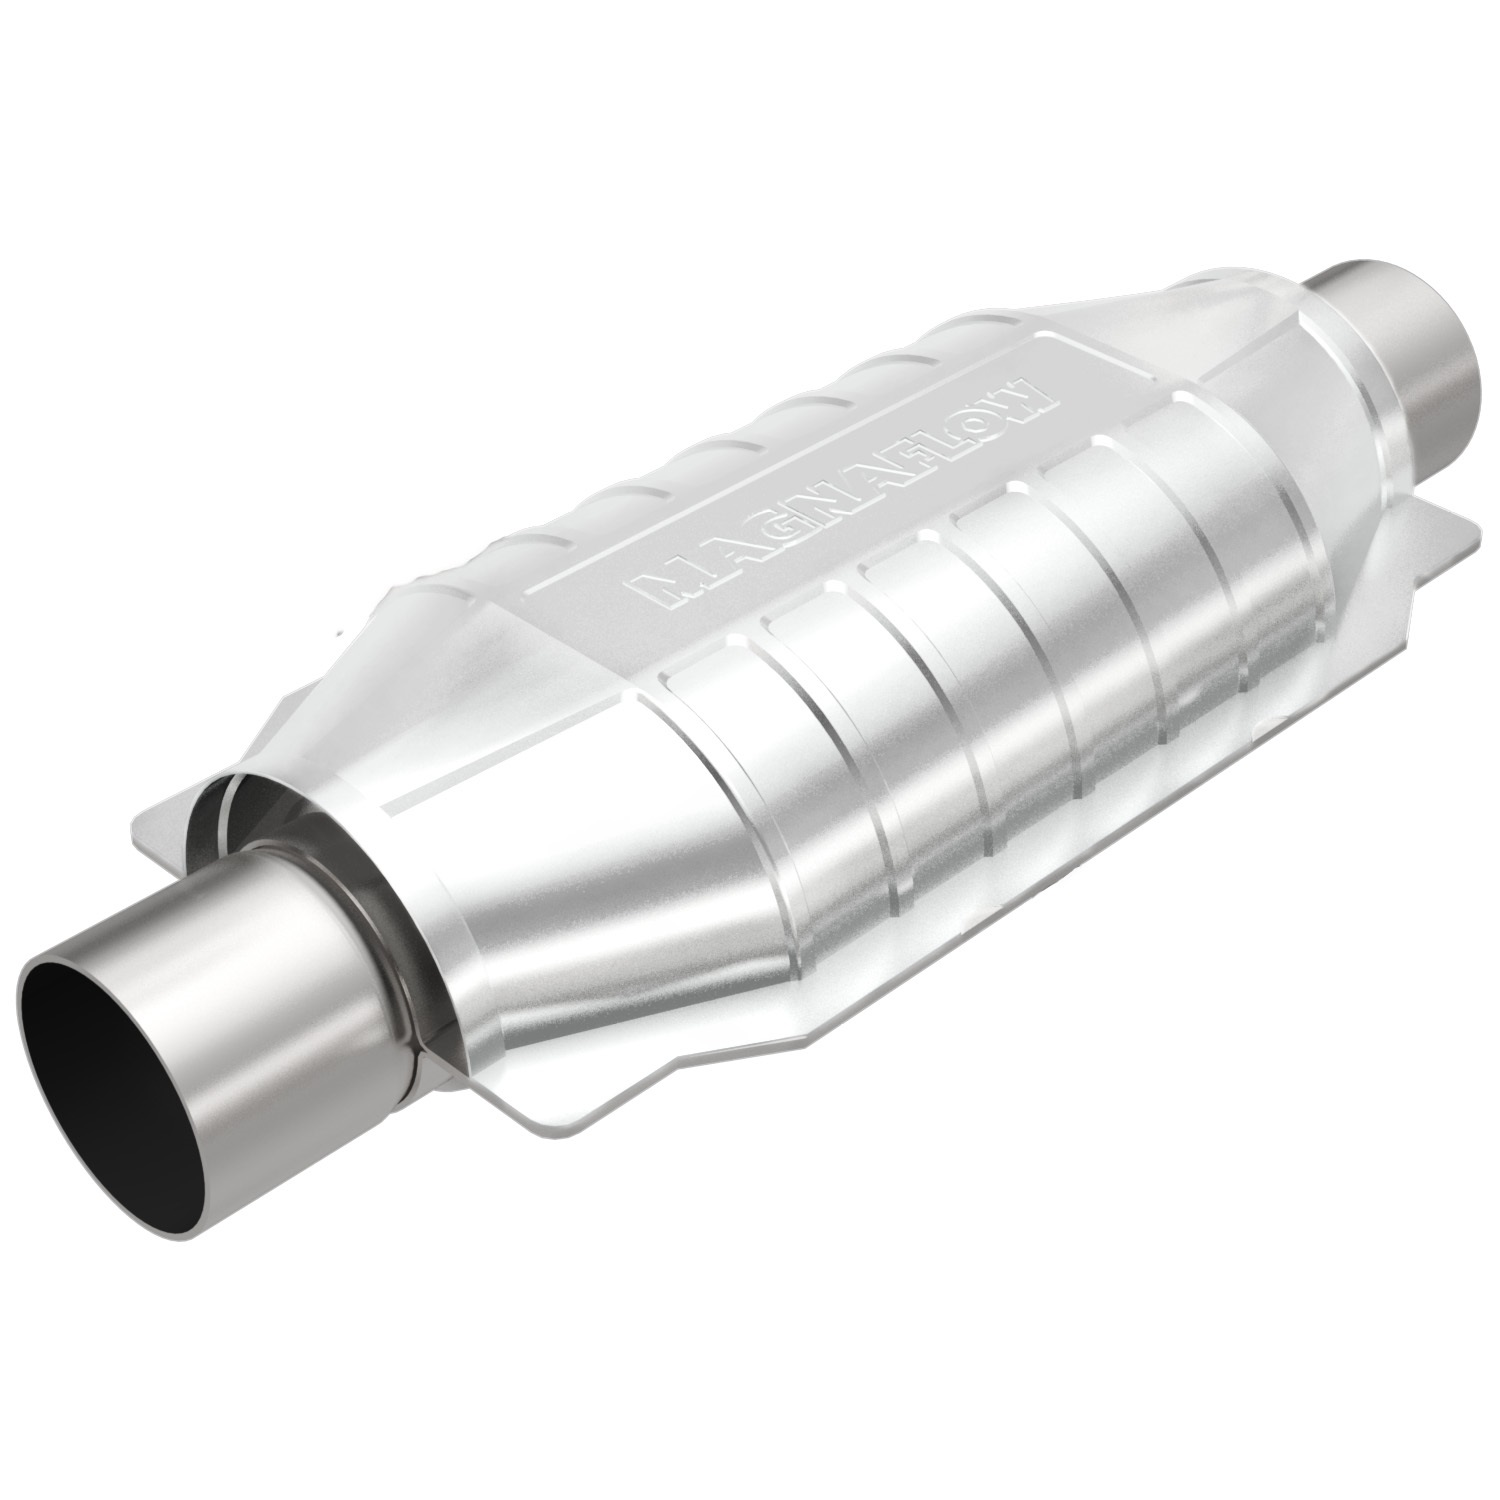 MagnaFlow Exhaust Products Catalytic Converter (33005)